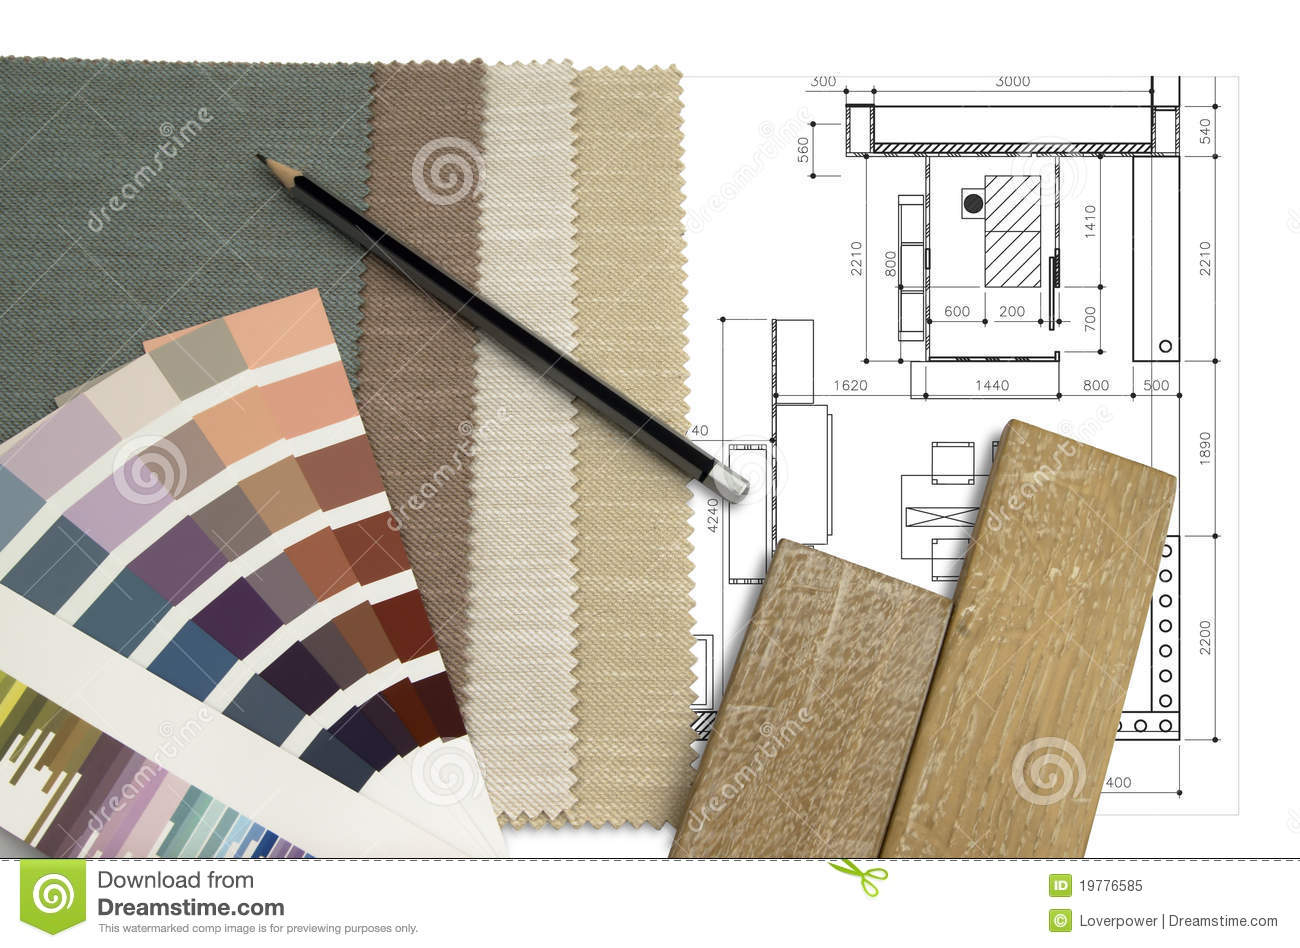 worktable interior design royalty free stock photo image